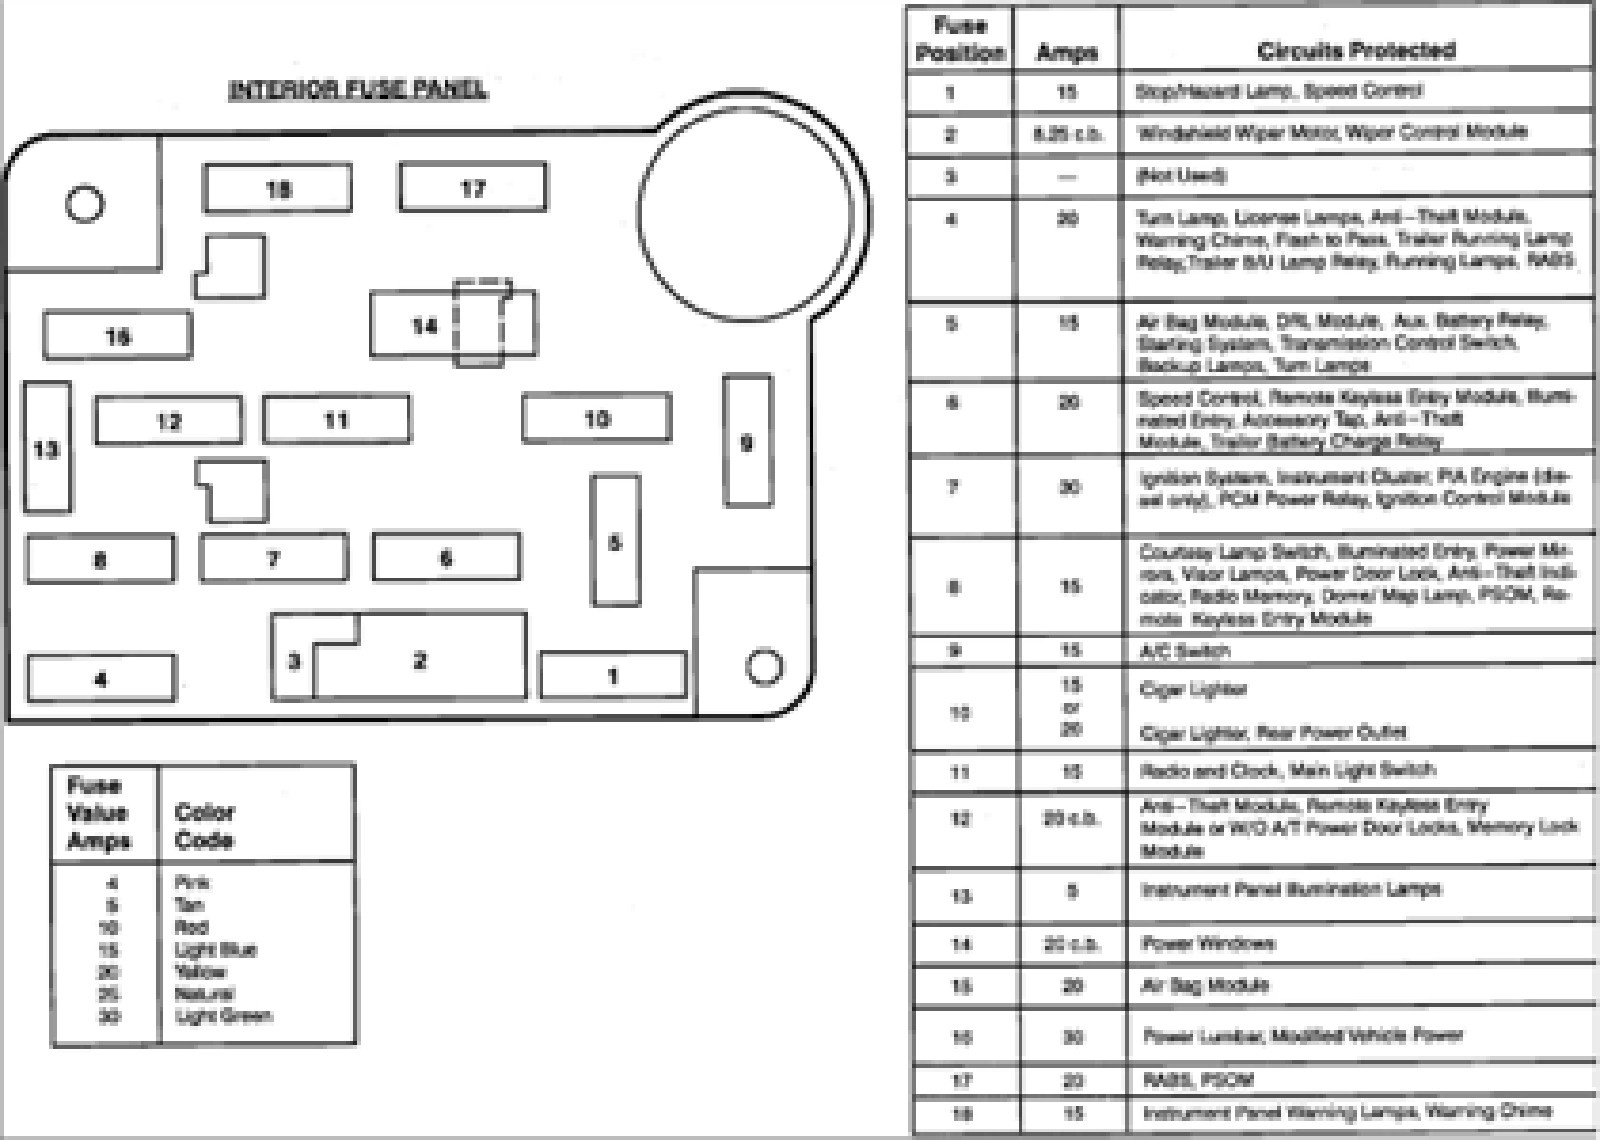 2006 ford e150 van fuse diagram free download simple wiring diagram rh  david huggett co uk